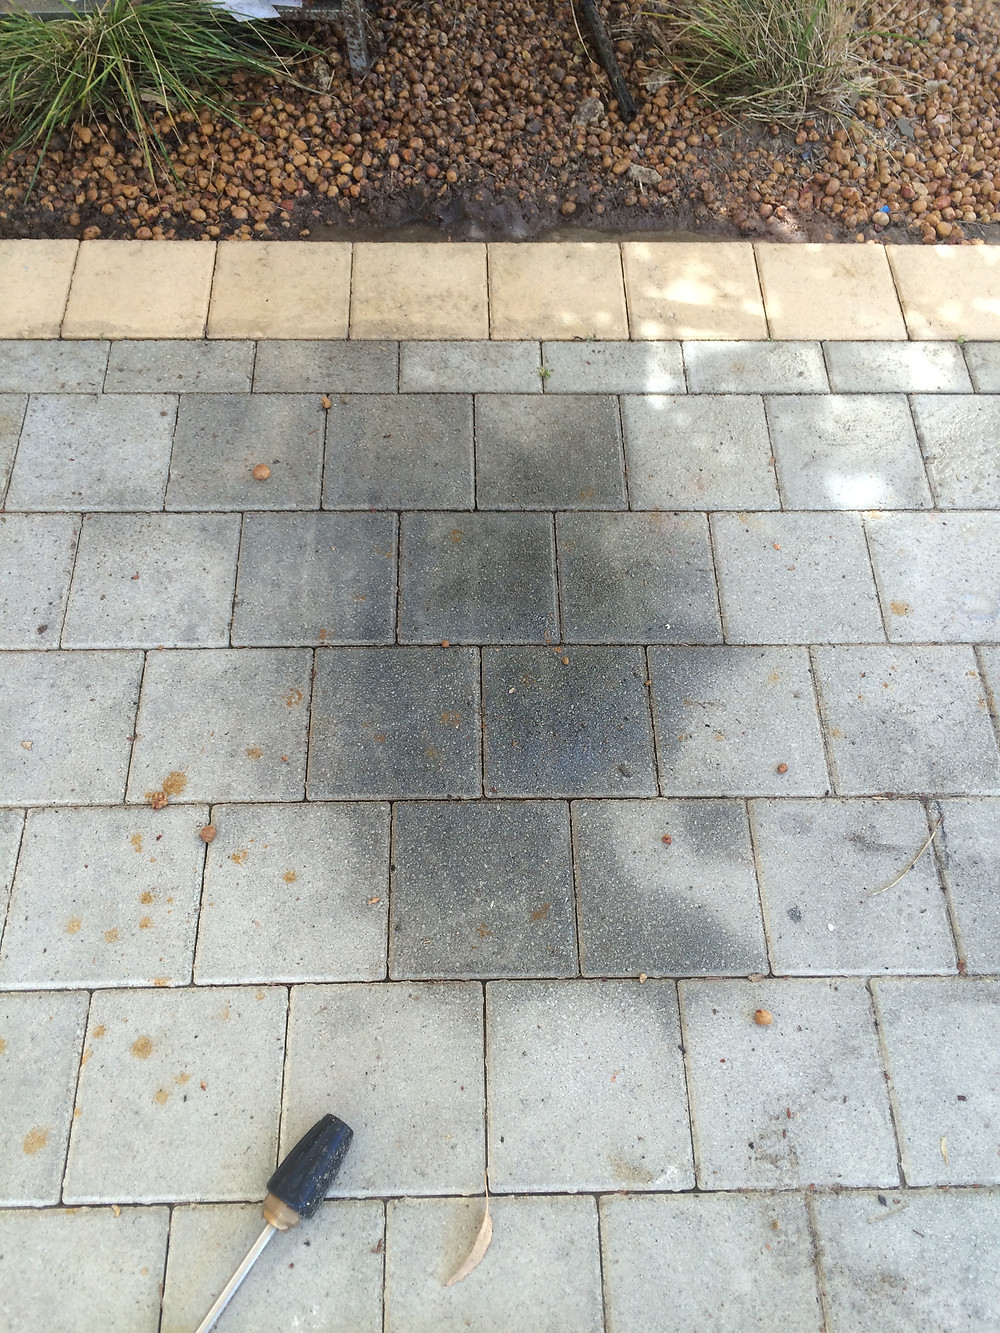 Oil stains on pavers